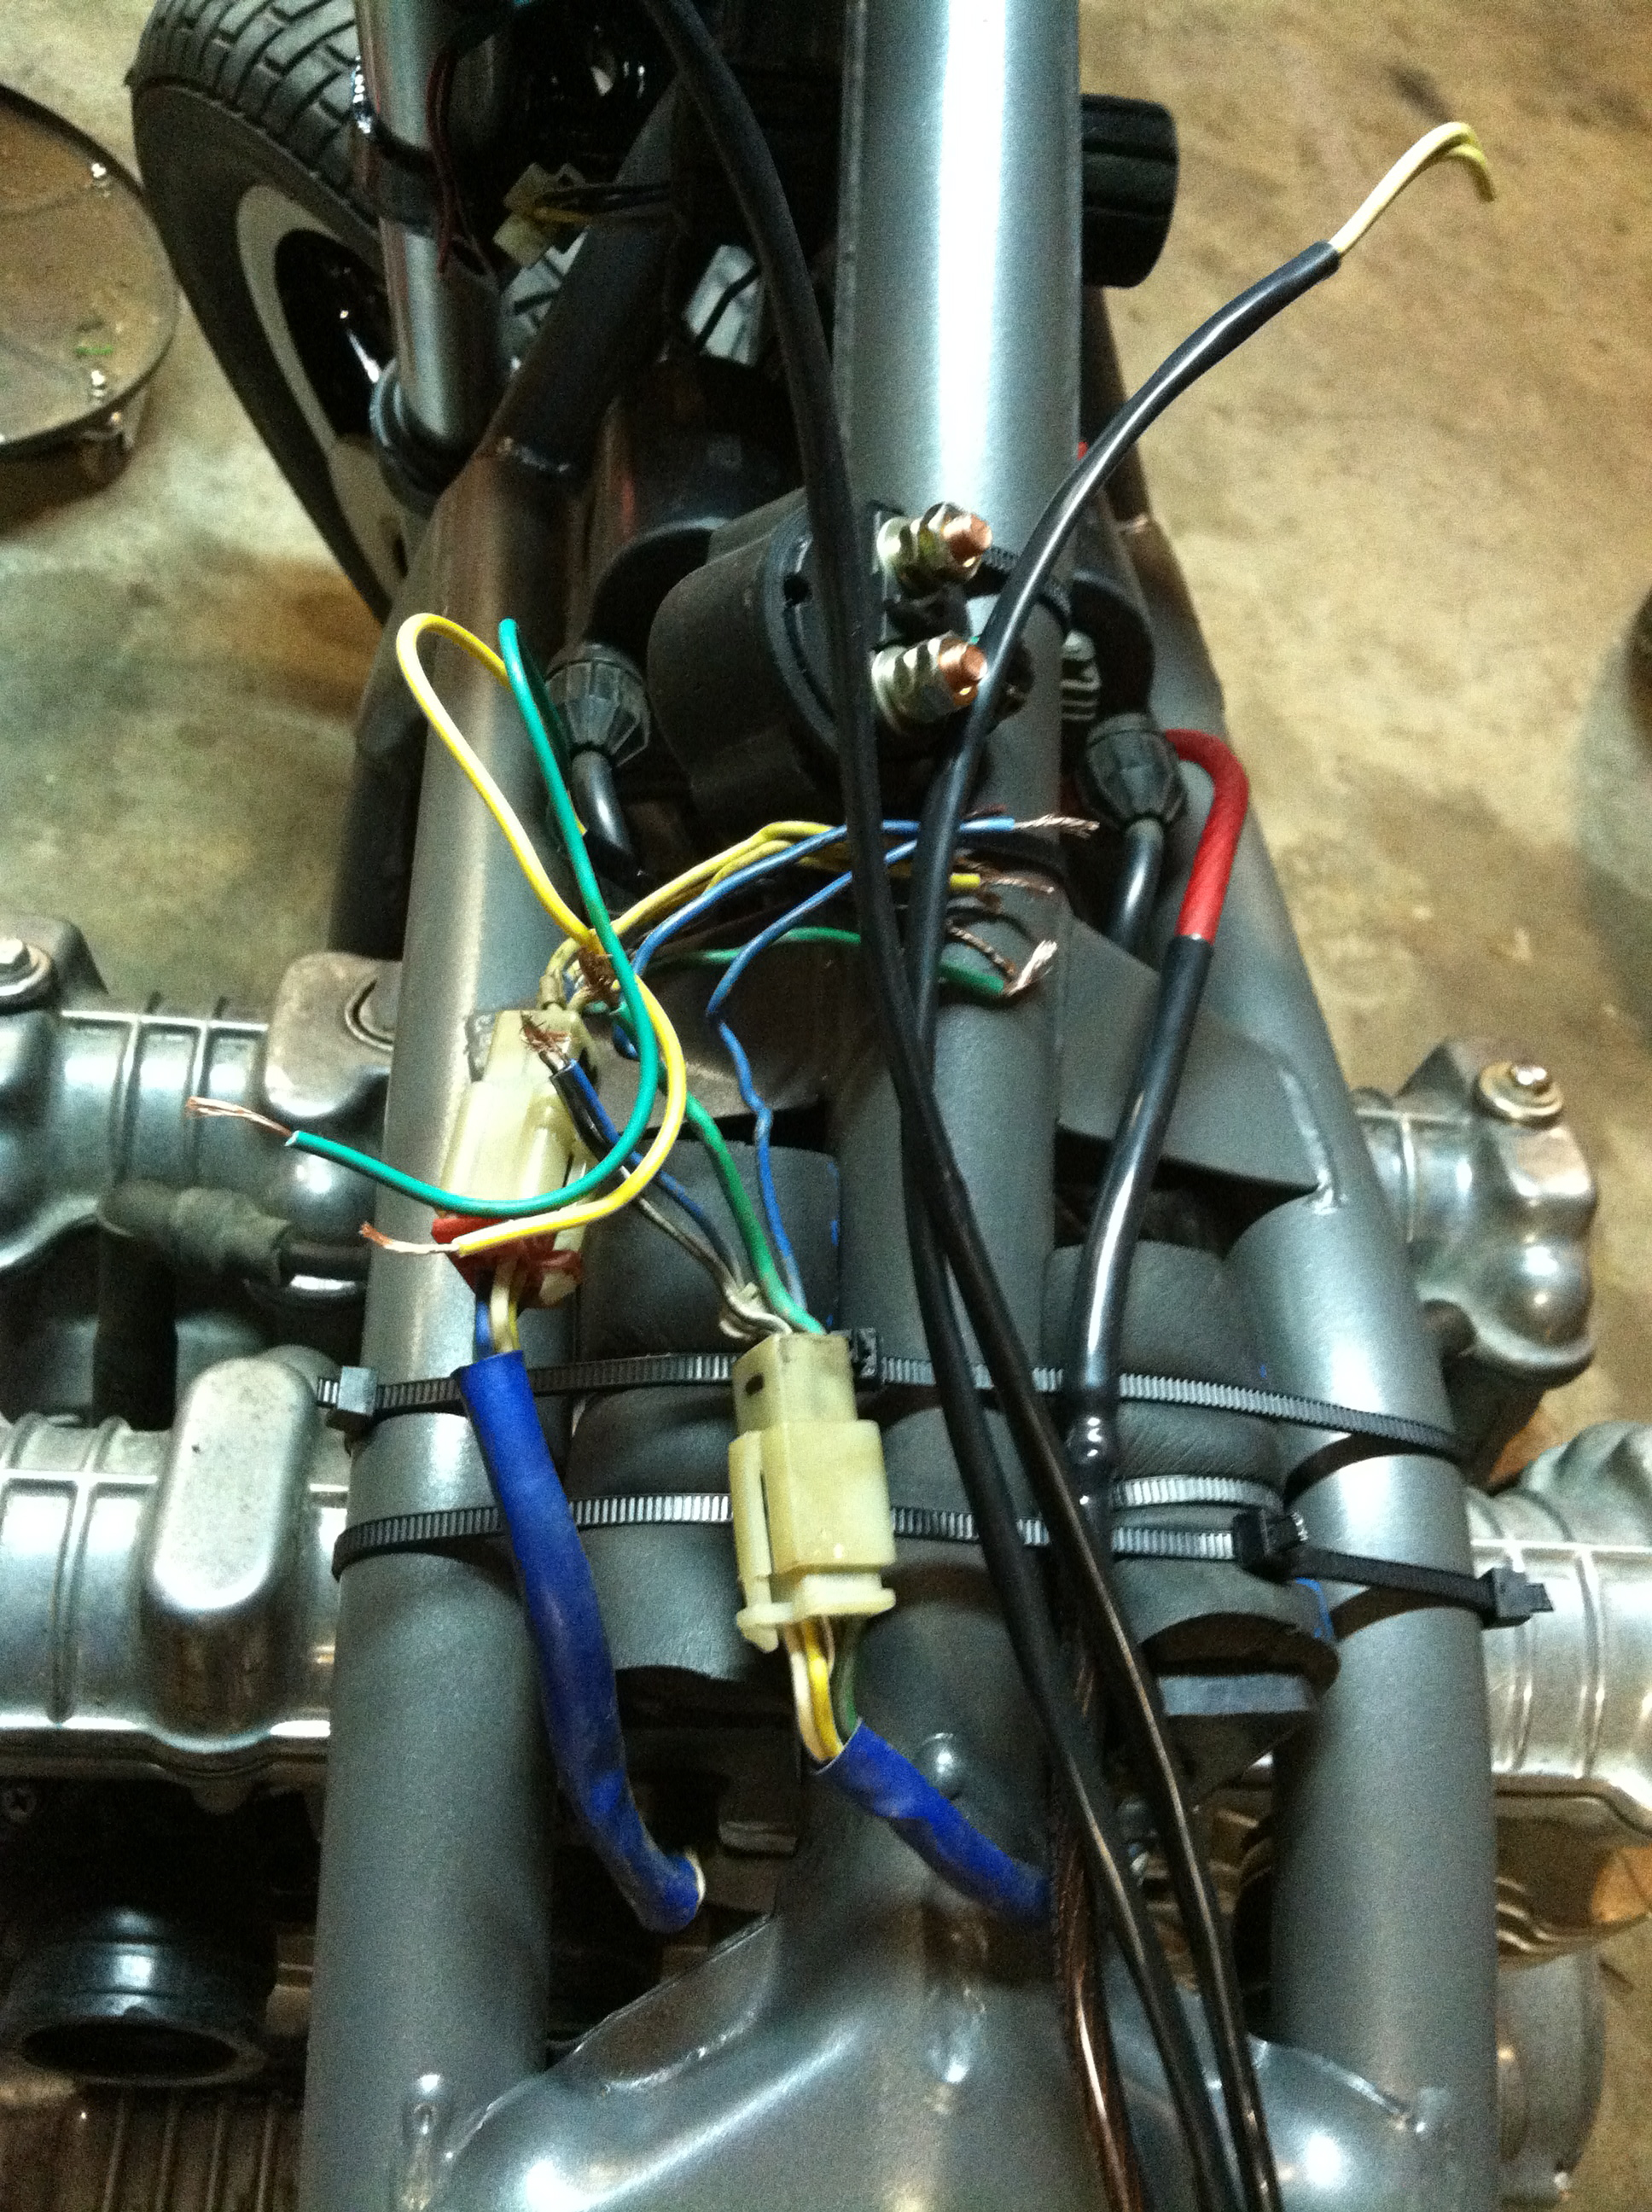 Wiring One Up Moto Garage Kawasaki Ninja Harness Routing Got All My Electrical Components On The Bike Just Need To Wire It Together Now What You See Here Will Be Cleaned And Hidden Under Tank Of